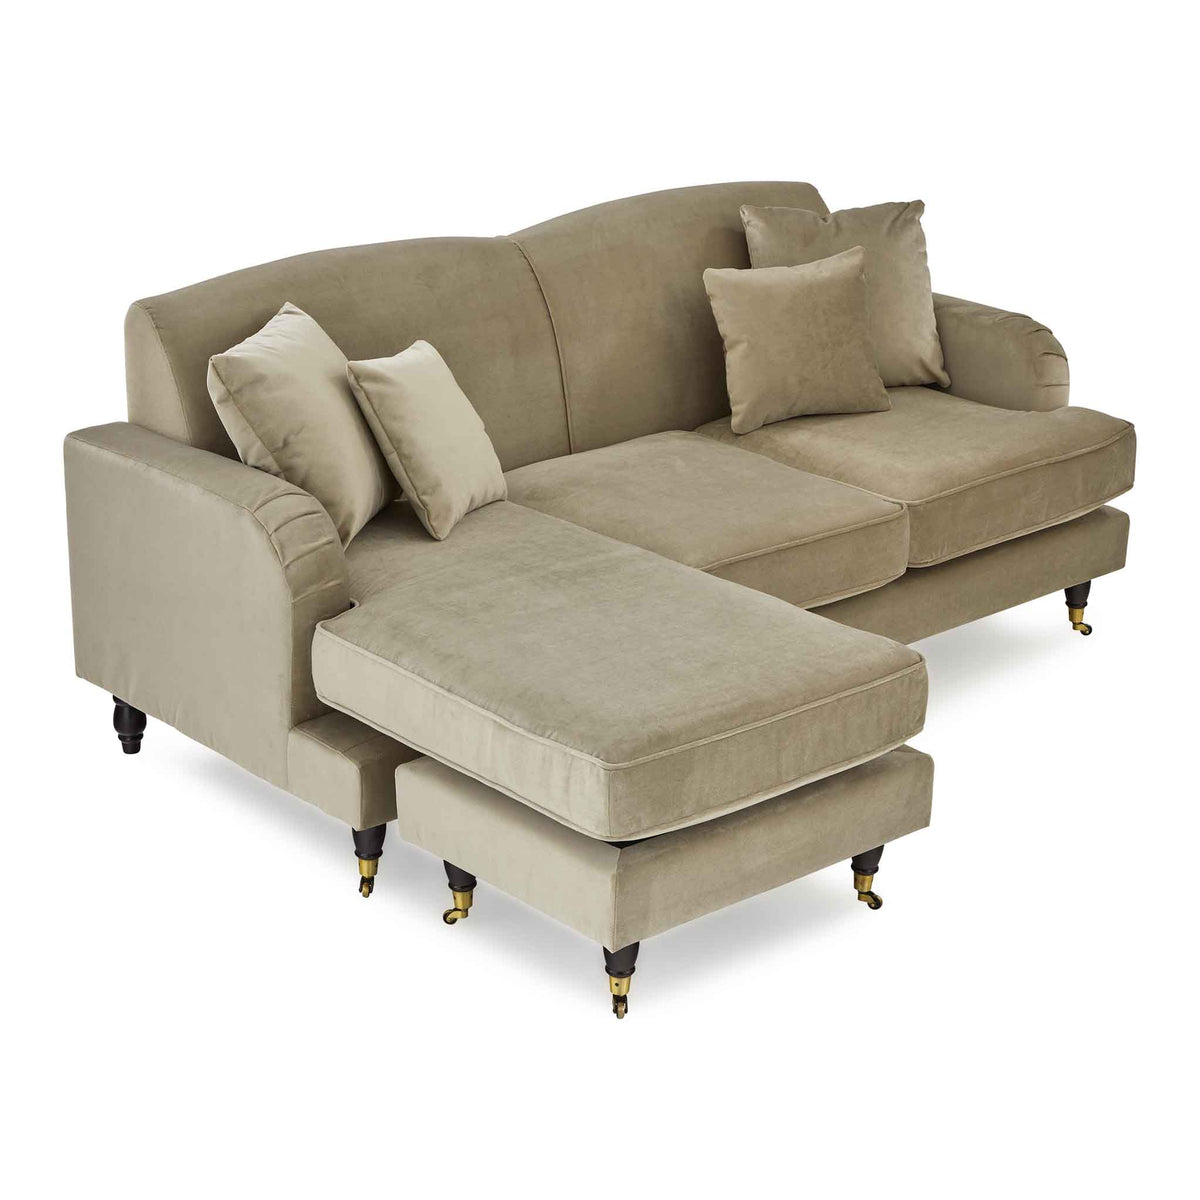 Piper Putty Velvet Corner Chaise Couch from Roseland Furniture